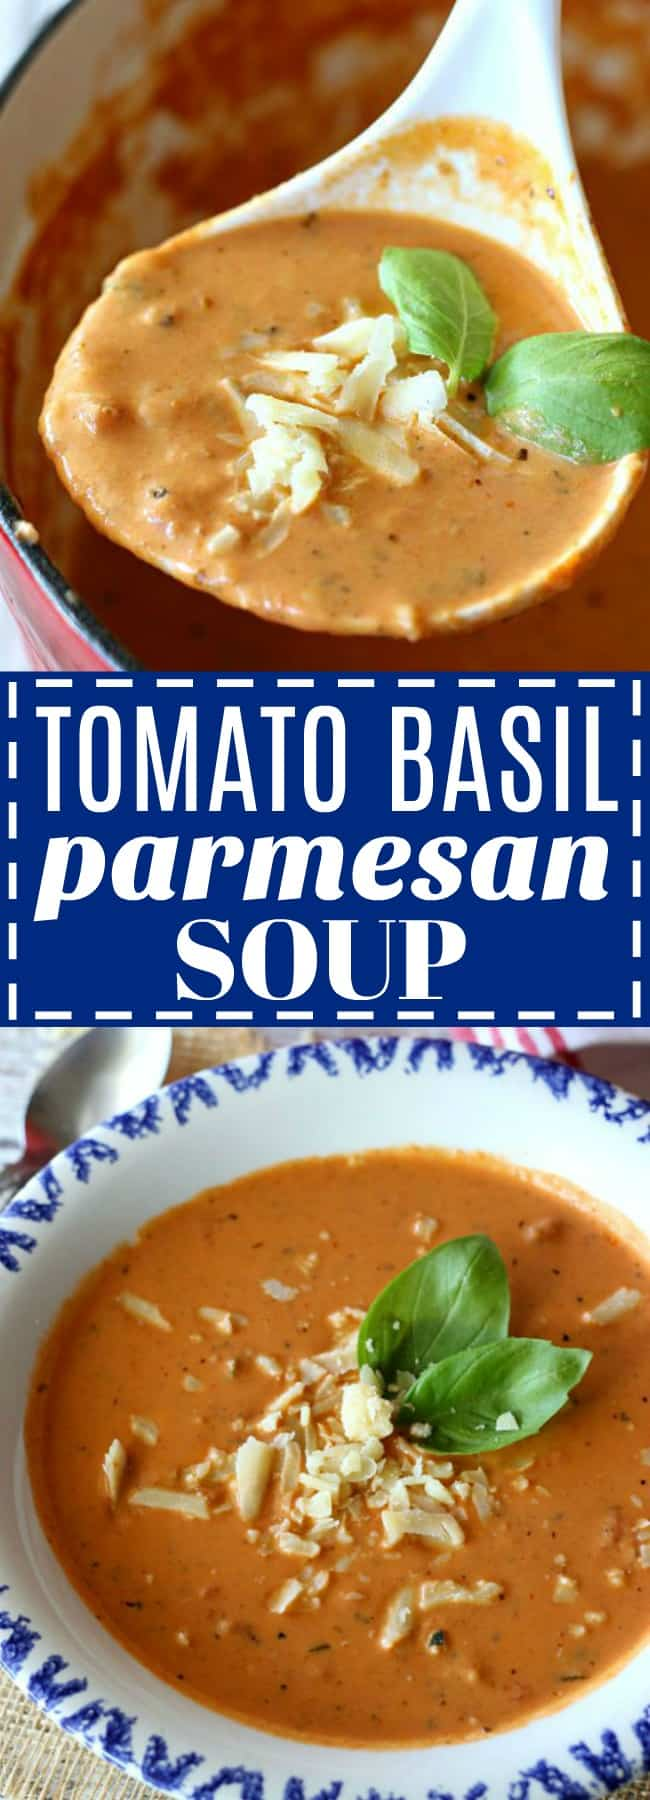 Warm up with a bowl of this quick and easy Creamy Tomato Basil Soup. Made with diced tomatoes, cream, fresh basil, parmesan, and a surprise ingredient!